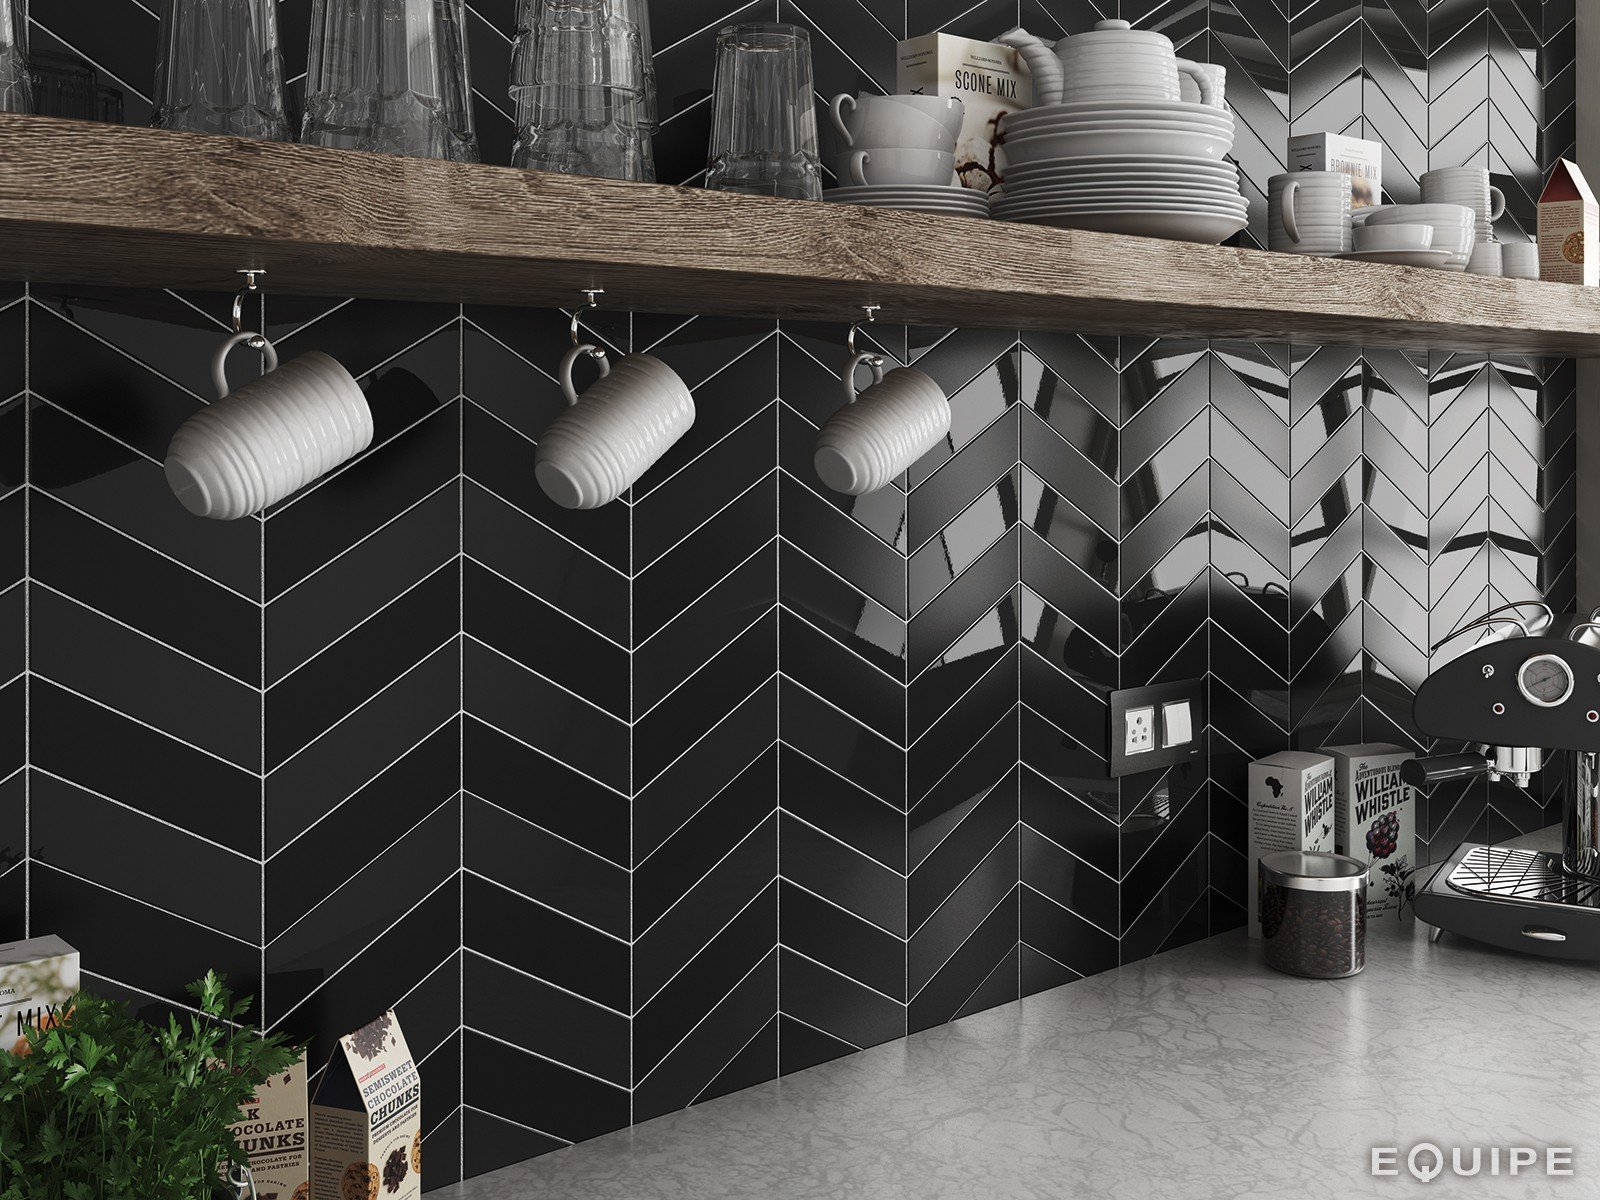 CHEVRON NERO GLOSS 5.2X18.6 L - SQM